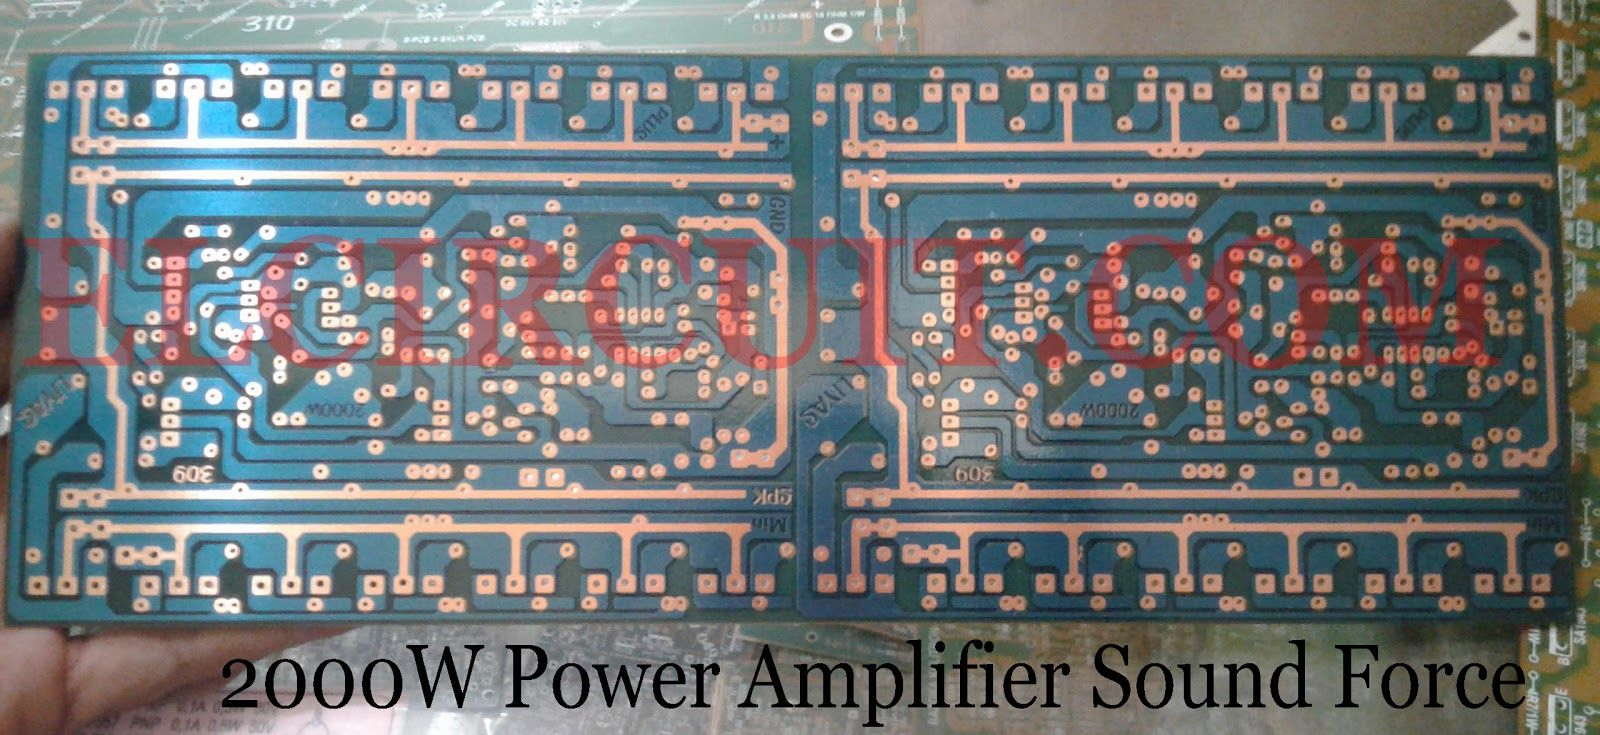 medium resolution of 2000w power amplifier circuit complete pcb layout in 2019 2000w audio amplifier circuit diagram pdf 2000w audio amplifier circuit diagrams